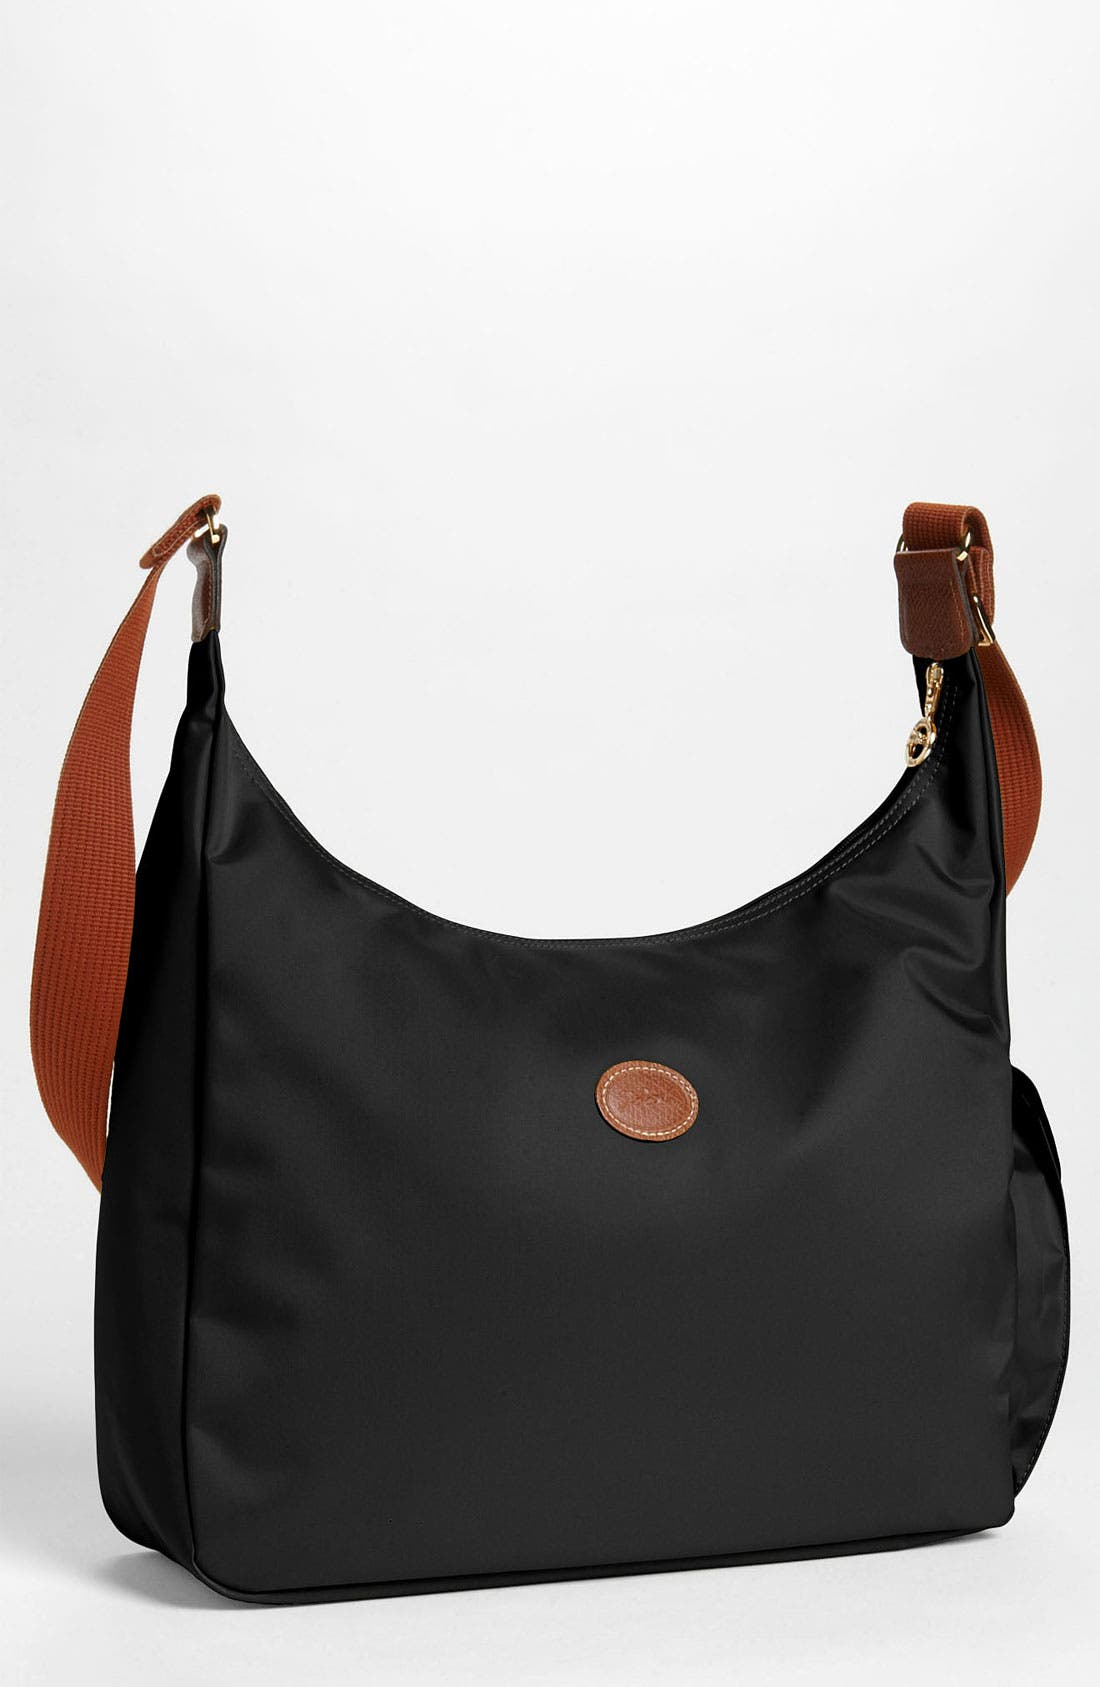 Alternate Image 1 Selected - Longchamp 'Le Pliage' Convertible Hobo